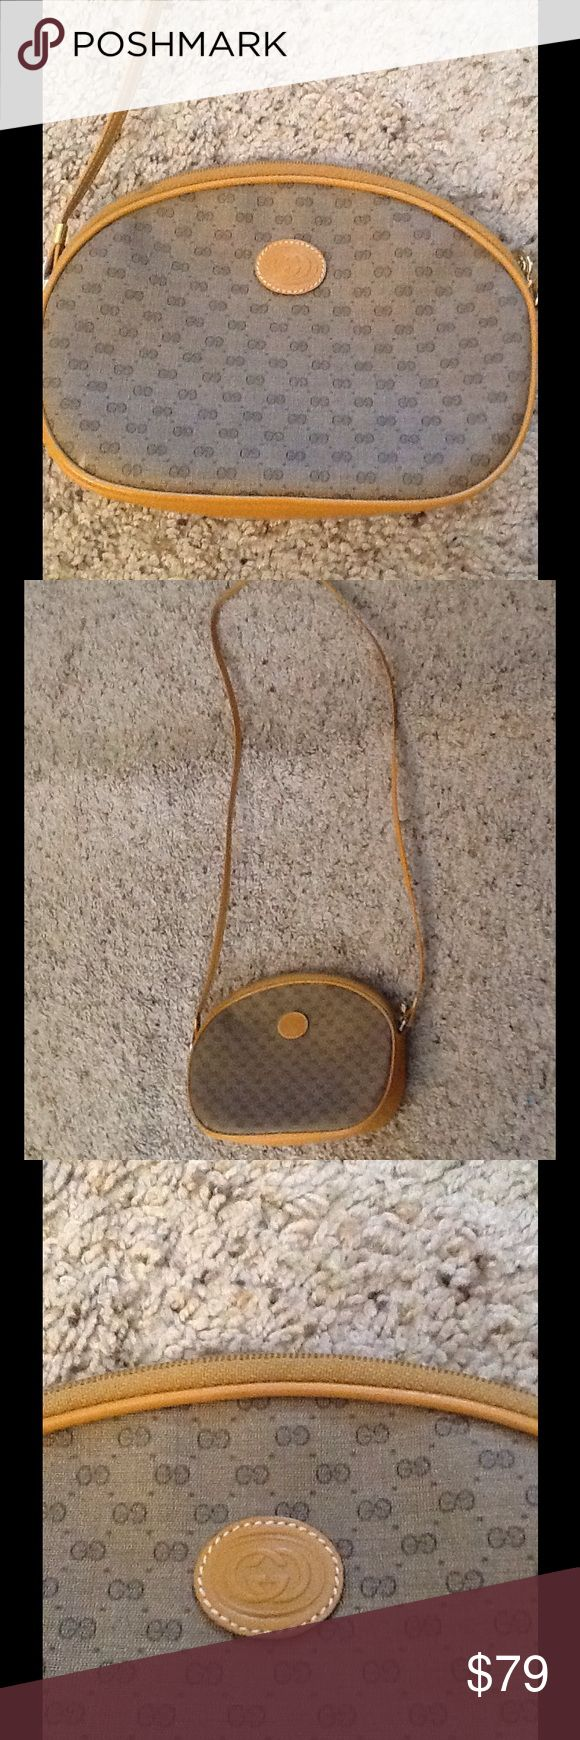 "GUCCI VINTAGE SIGNATURE LOGO GG SHOULDER BAG PURSE Burberry London silk Square scarf. Sheer pink and tan plaid pattern.  Excellent condition.  31"" X 31"".  Just gorgeous!  Will ship right away.  Check out my other designer items Gucci Bags Shoulder Bags"